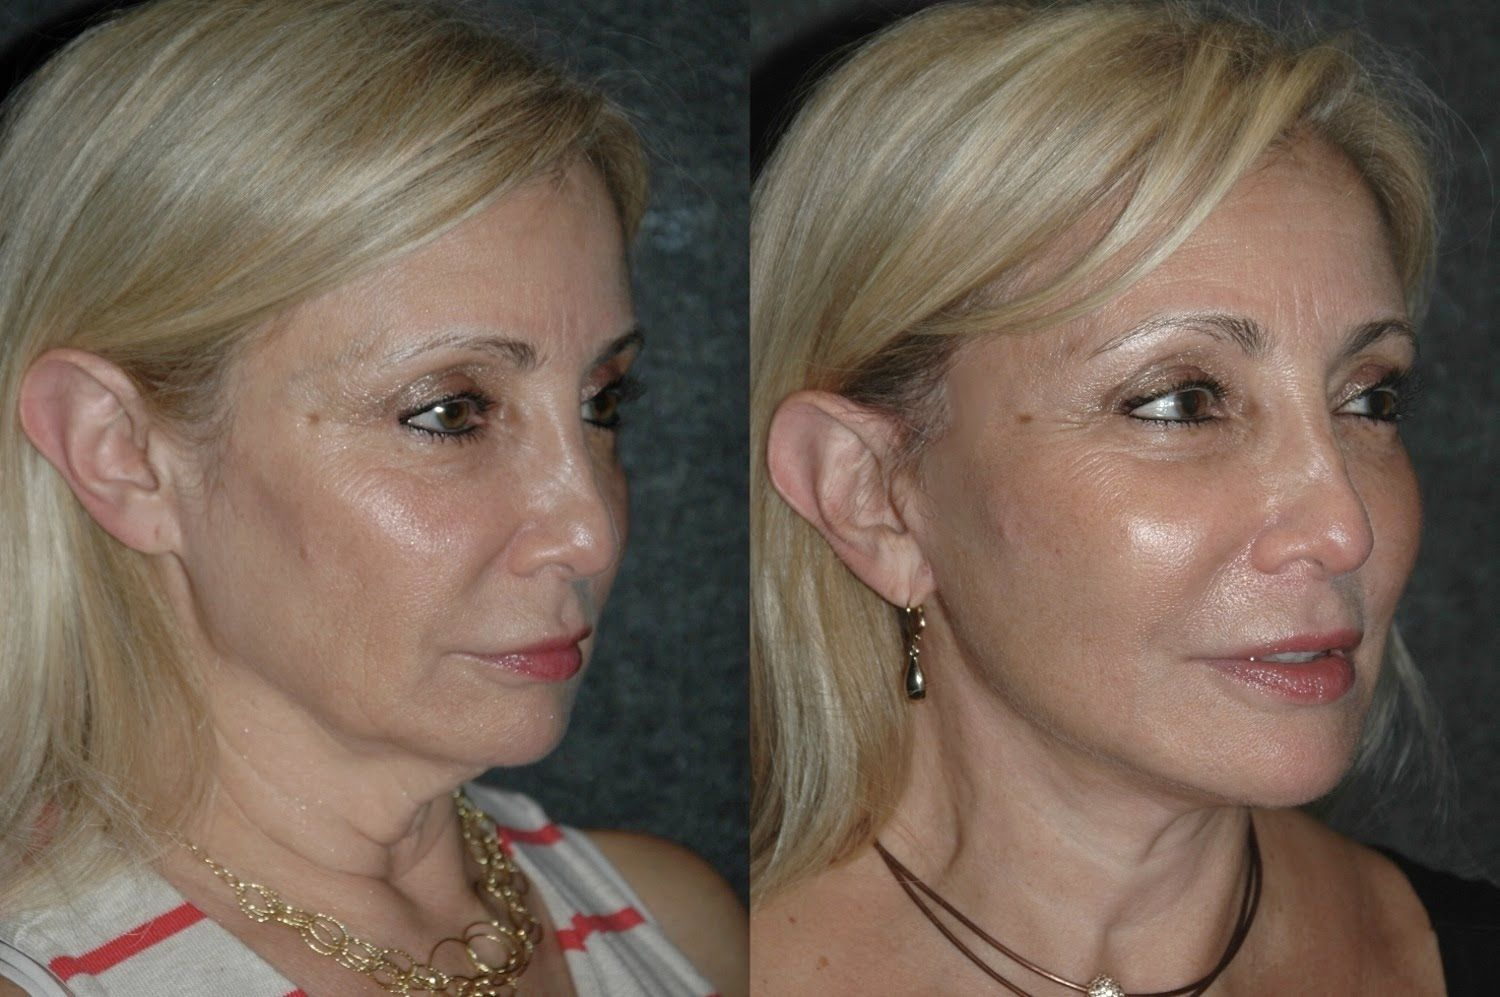 Local Anesthesia Neck Lift Before And After 59 Year Old